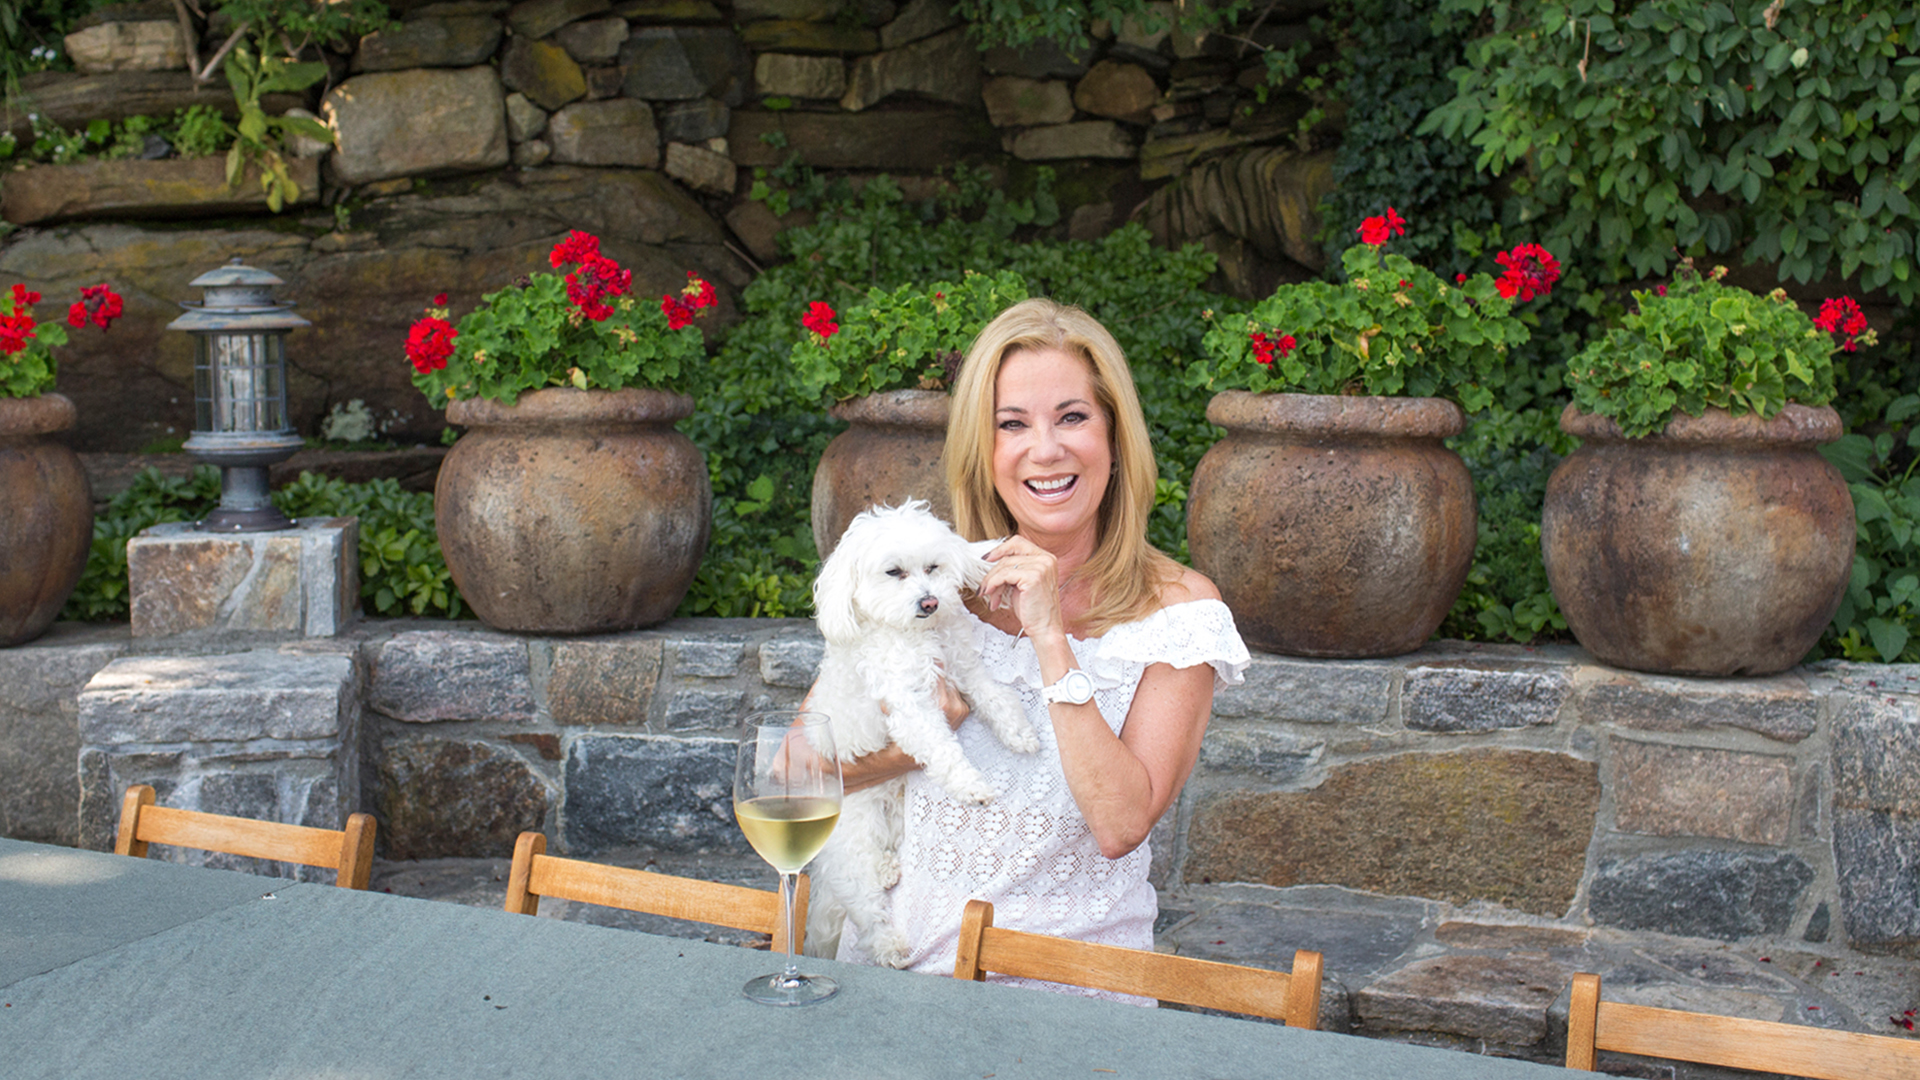 Kathie Lee Gifford Wine Where To Buy - At home with today join kathie lee gifford in her favorite spot today com